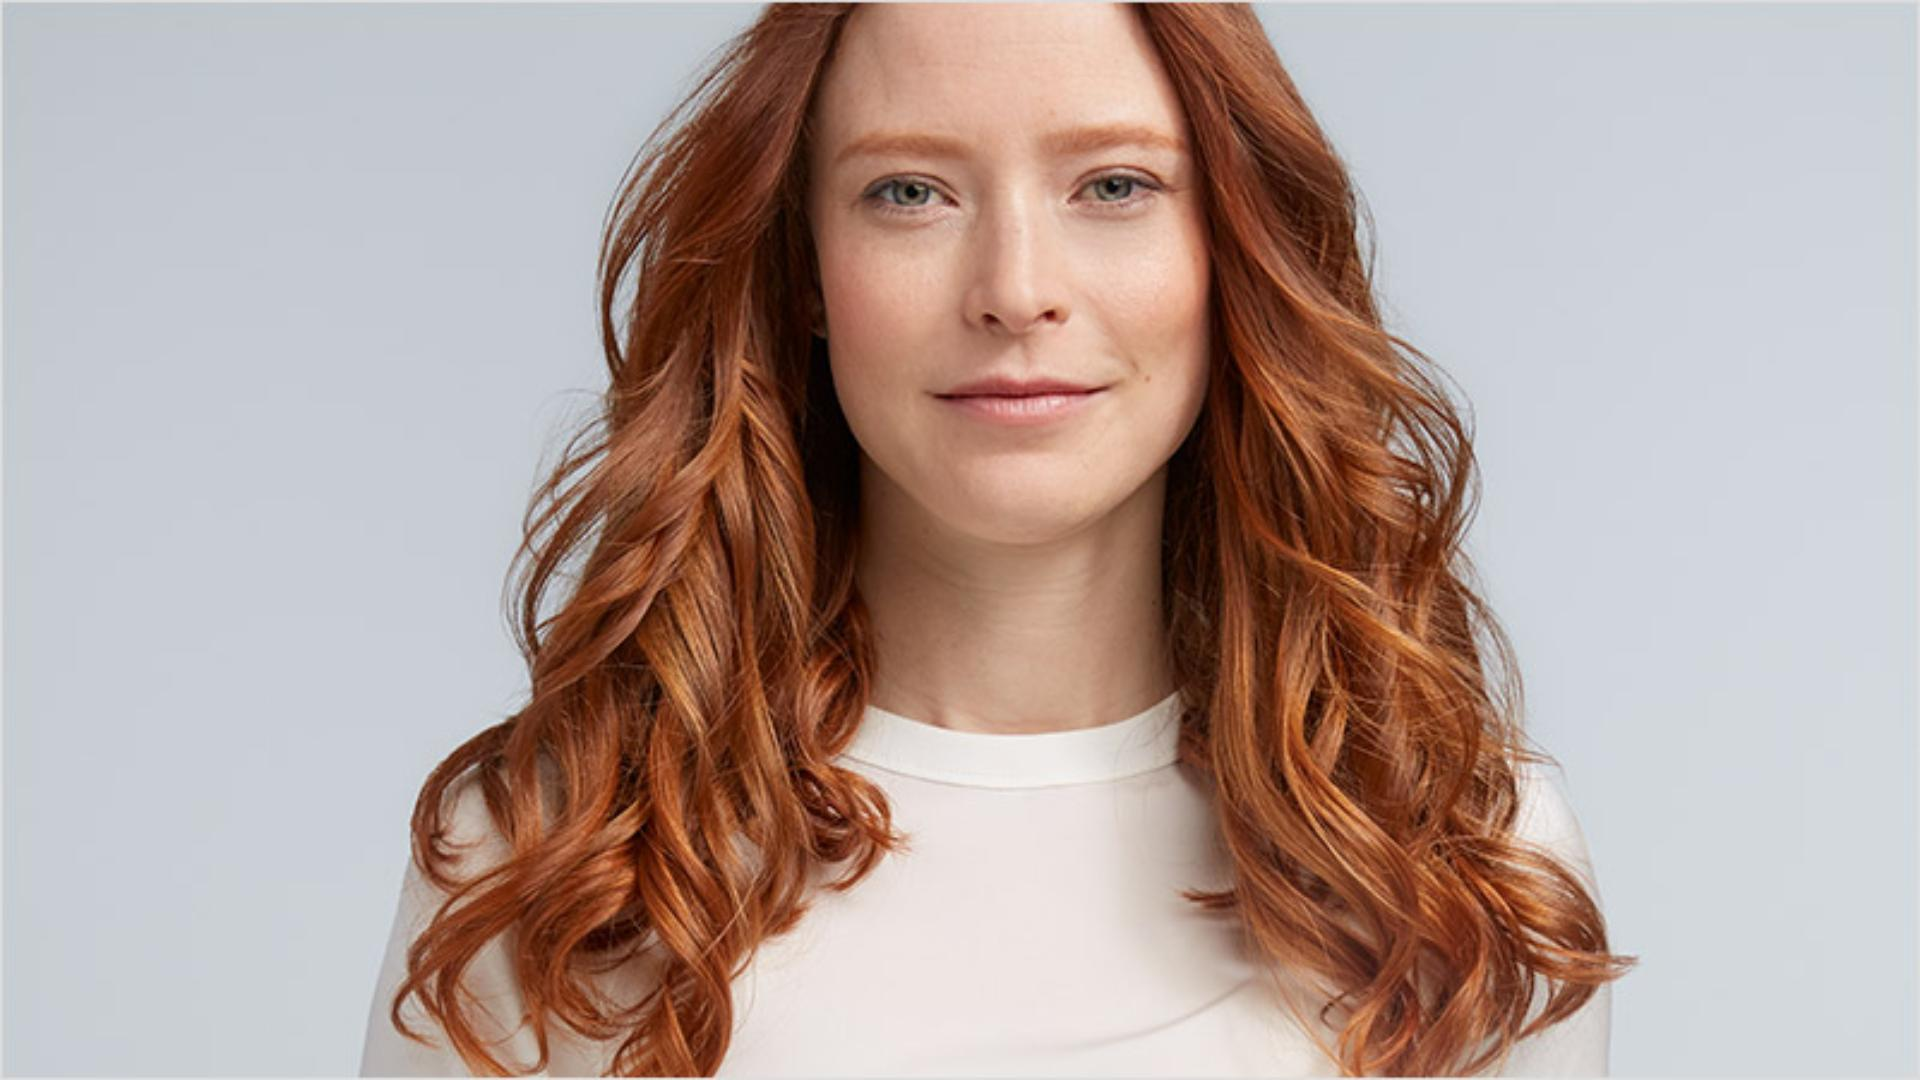 Model with casual curls